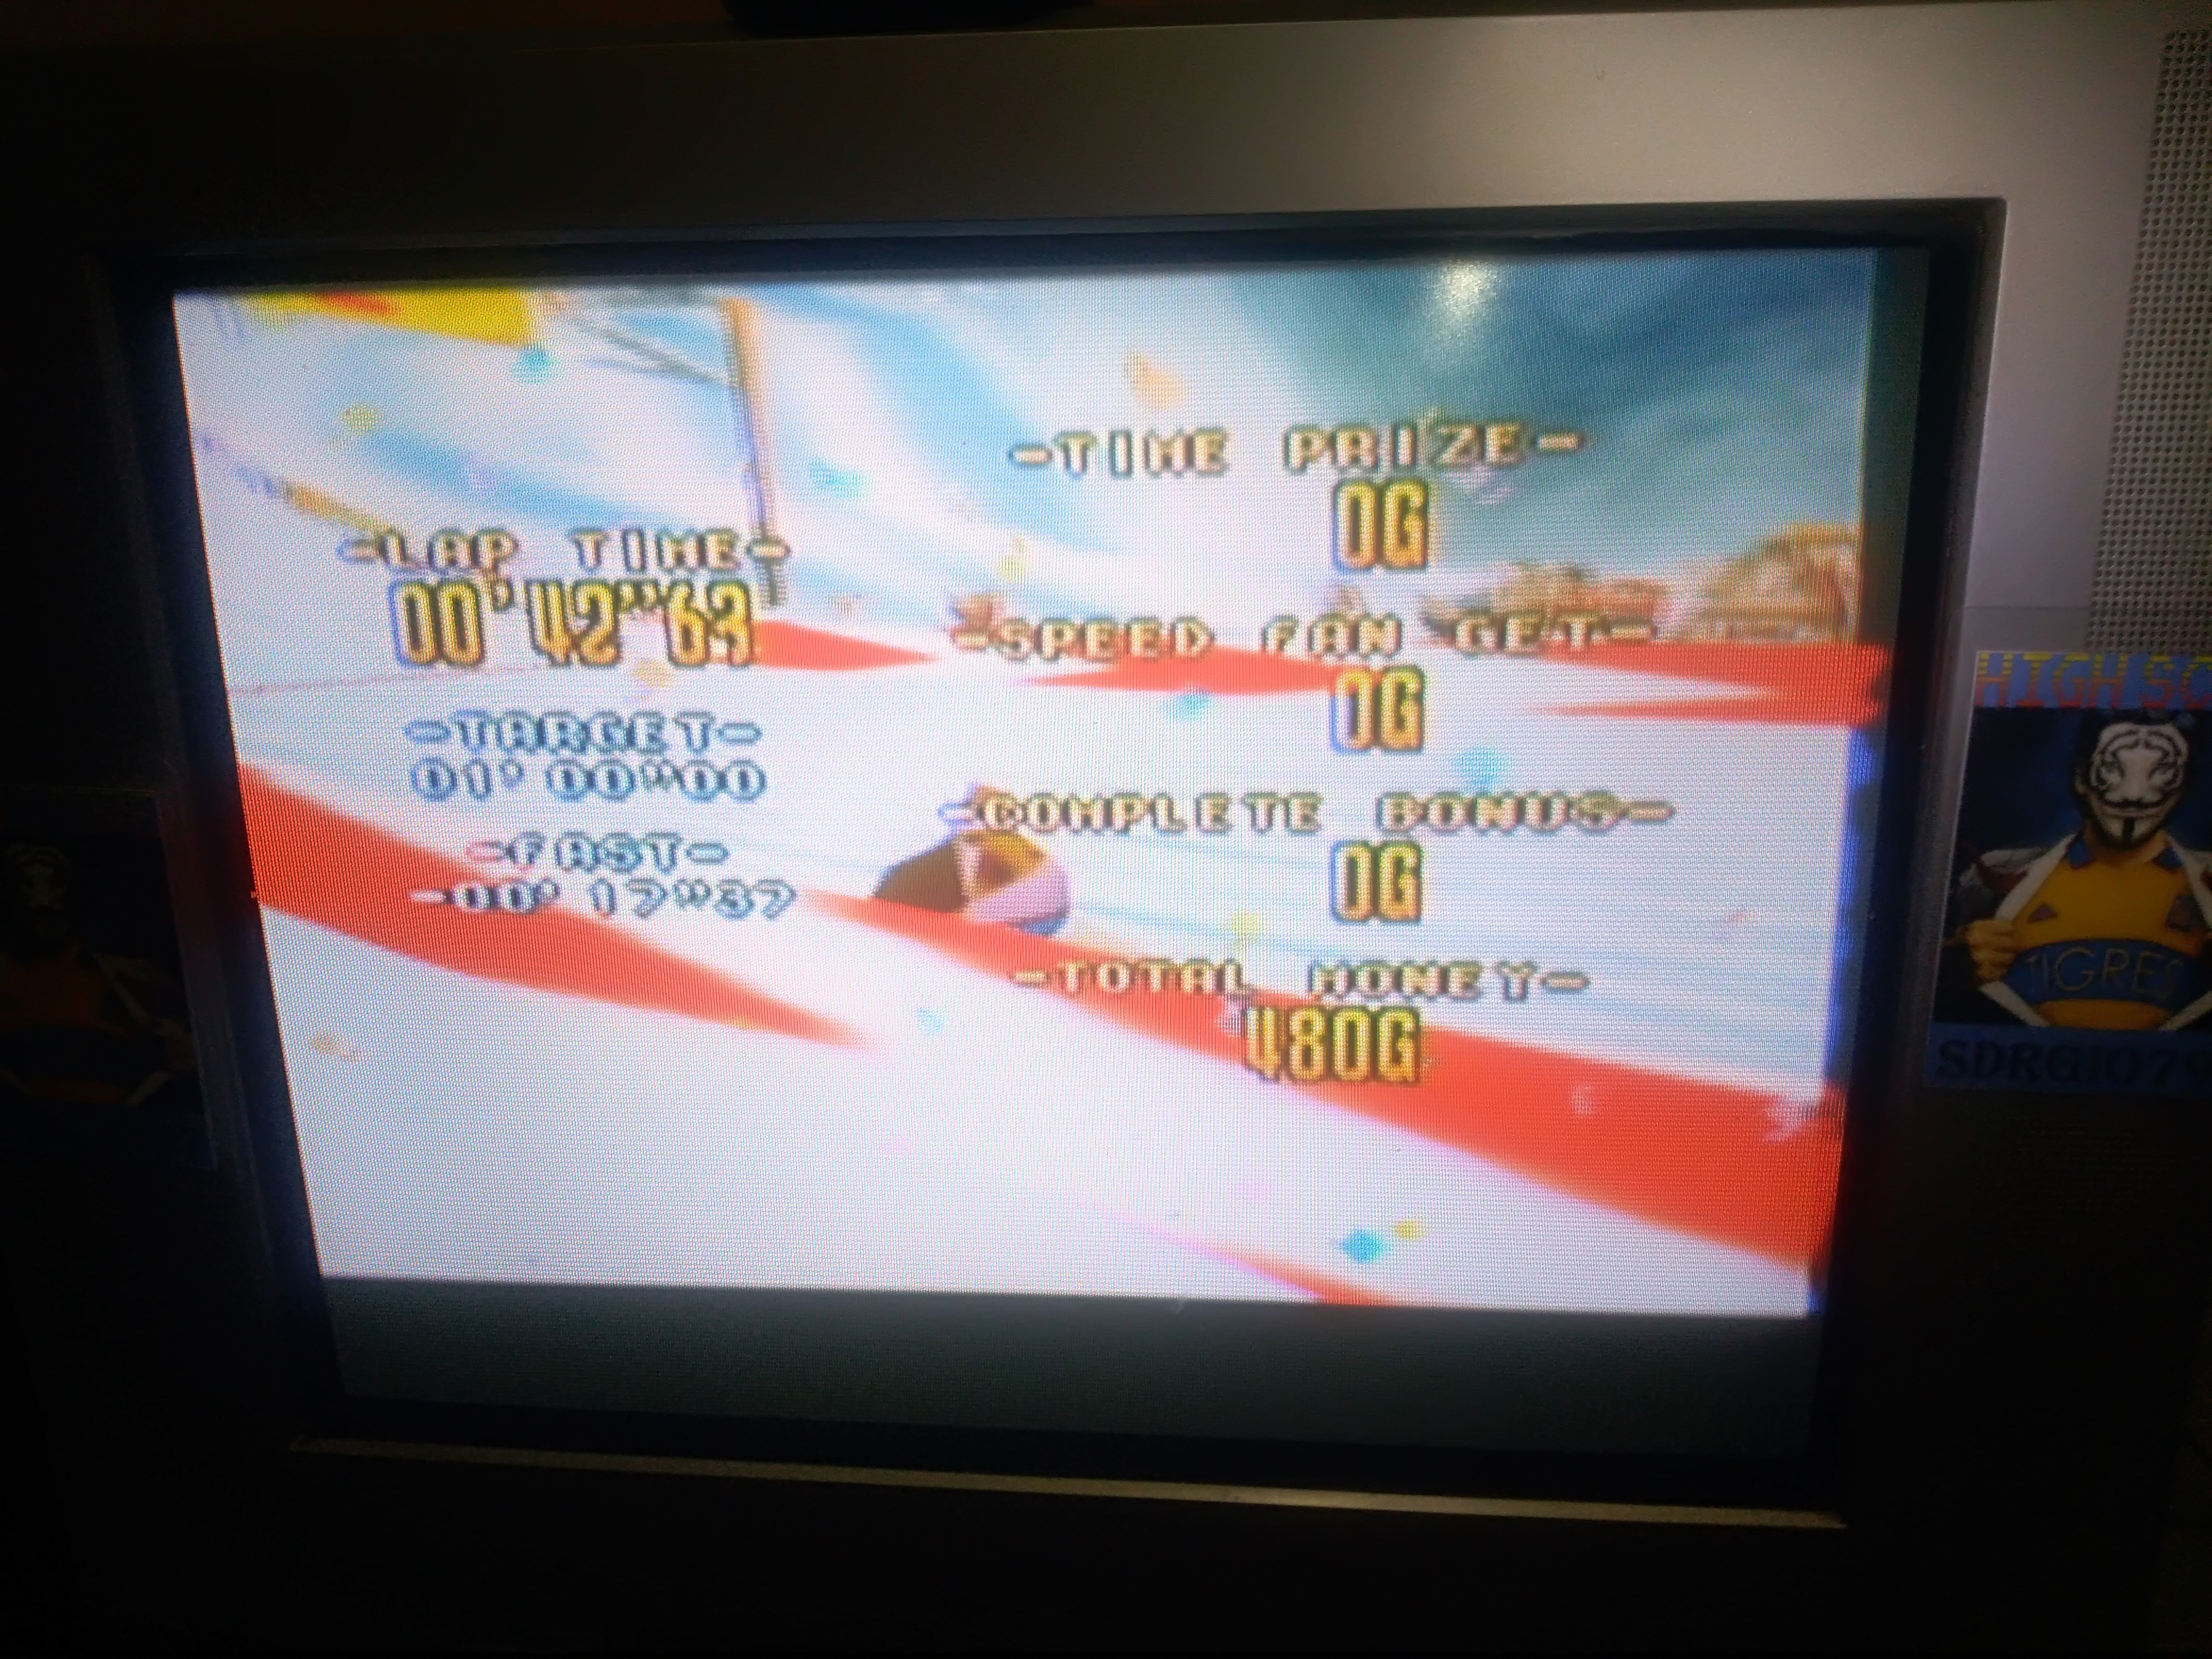 Sdrgio797: Snowboard Kids: Speed Game [Rookie MT./Fastest Lap] (N64 Emulated) 0:00:42.63 points on 2020-08-09 15:42:32